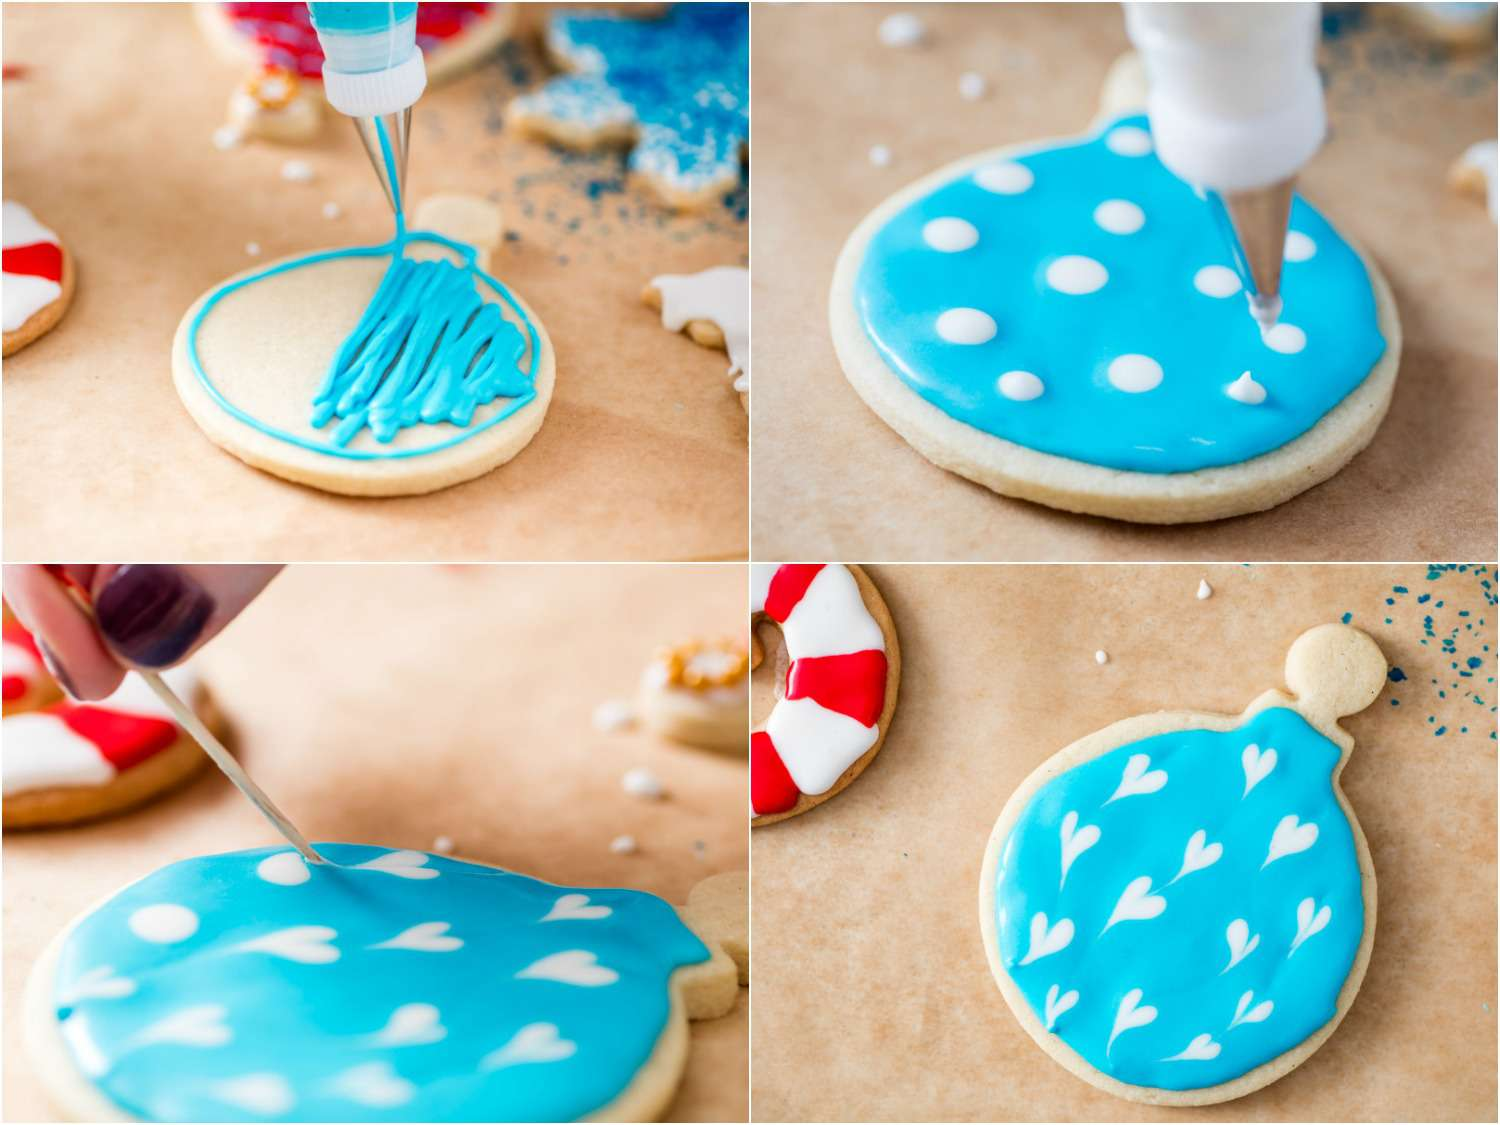 20161207-holiday-cookie-decorating-icing-sugar-cookies-vicky-wasik-hearts-collage.jpg